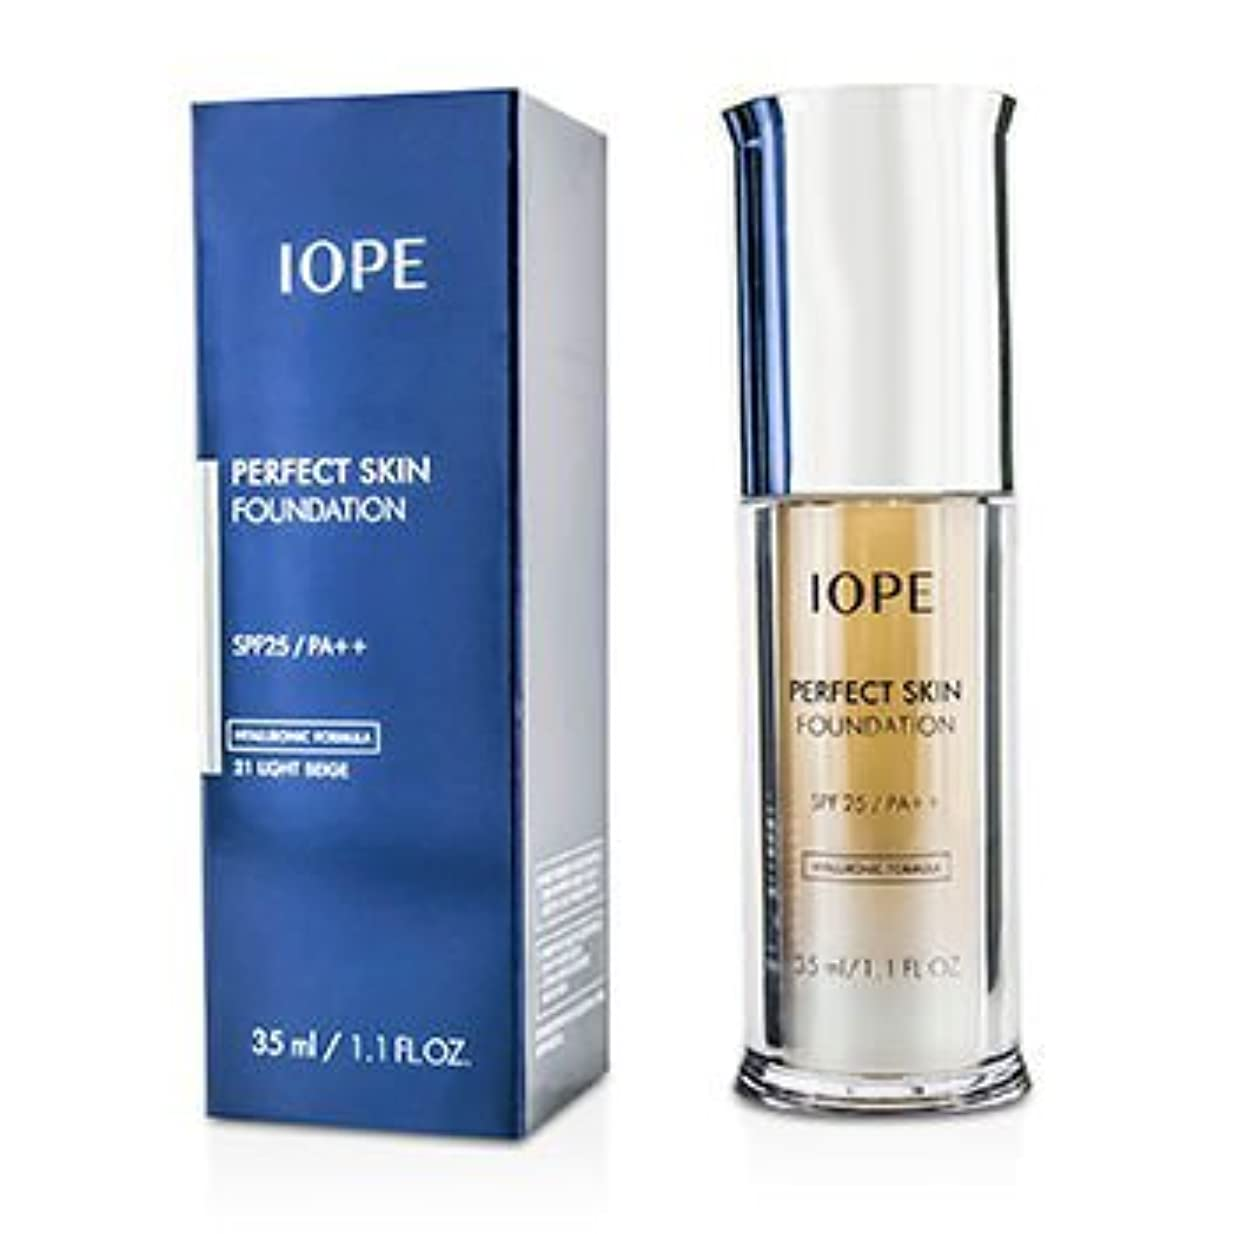 概して肌寒い調子[IOPE] Perfect Skin Foundation SPF25 - # 21 Light Beige 35ml/1.1oz